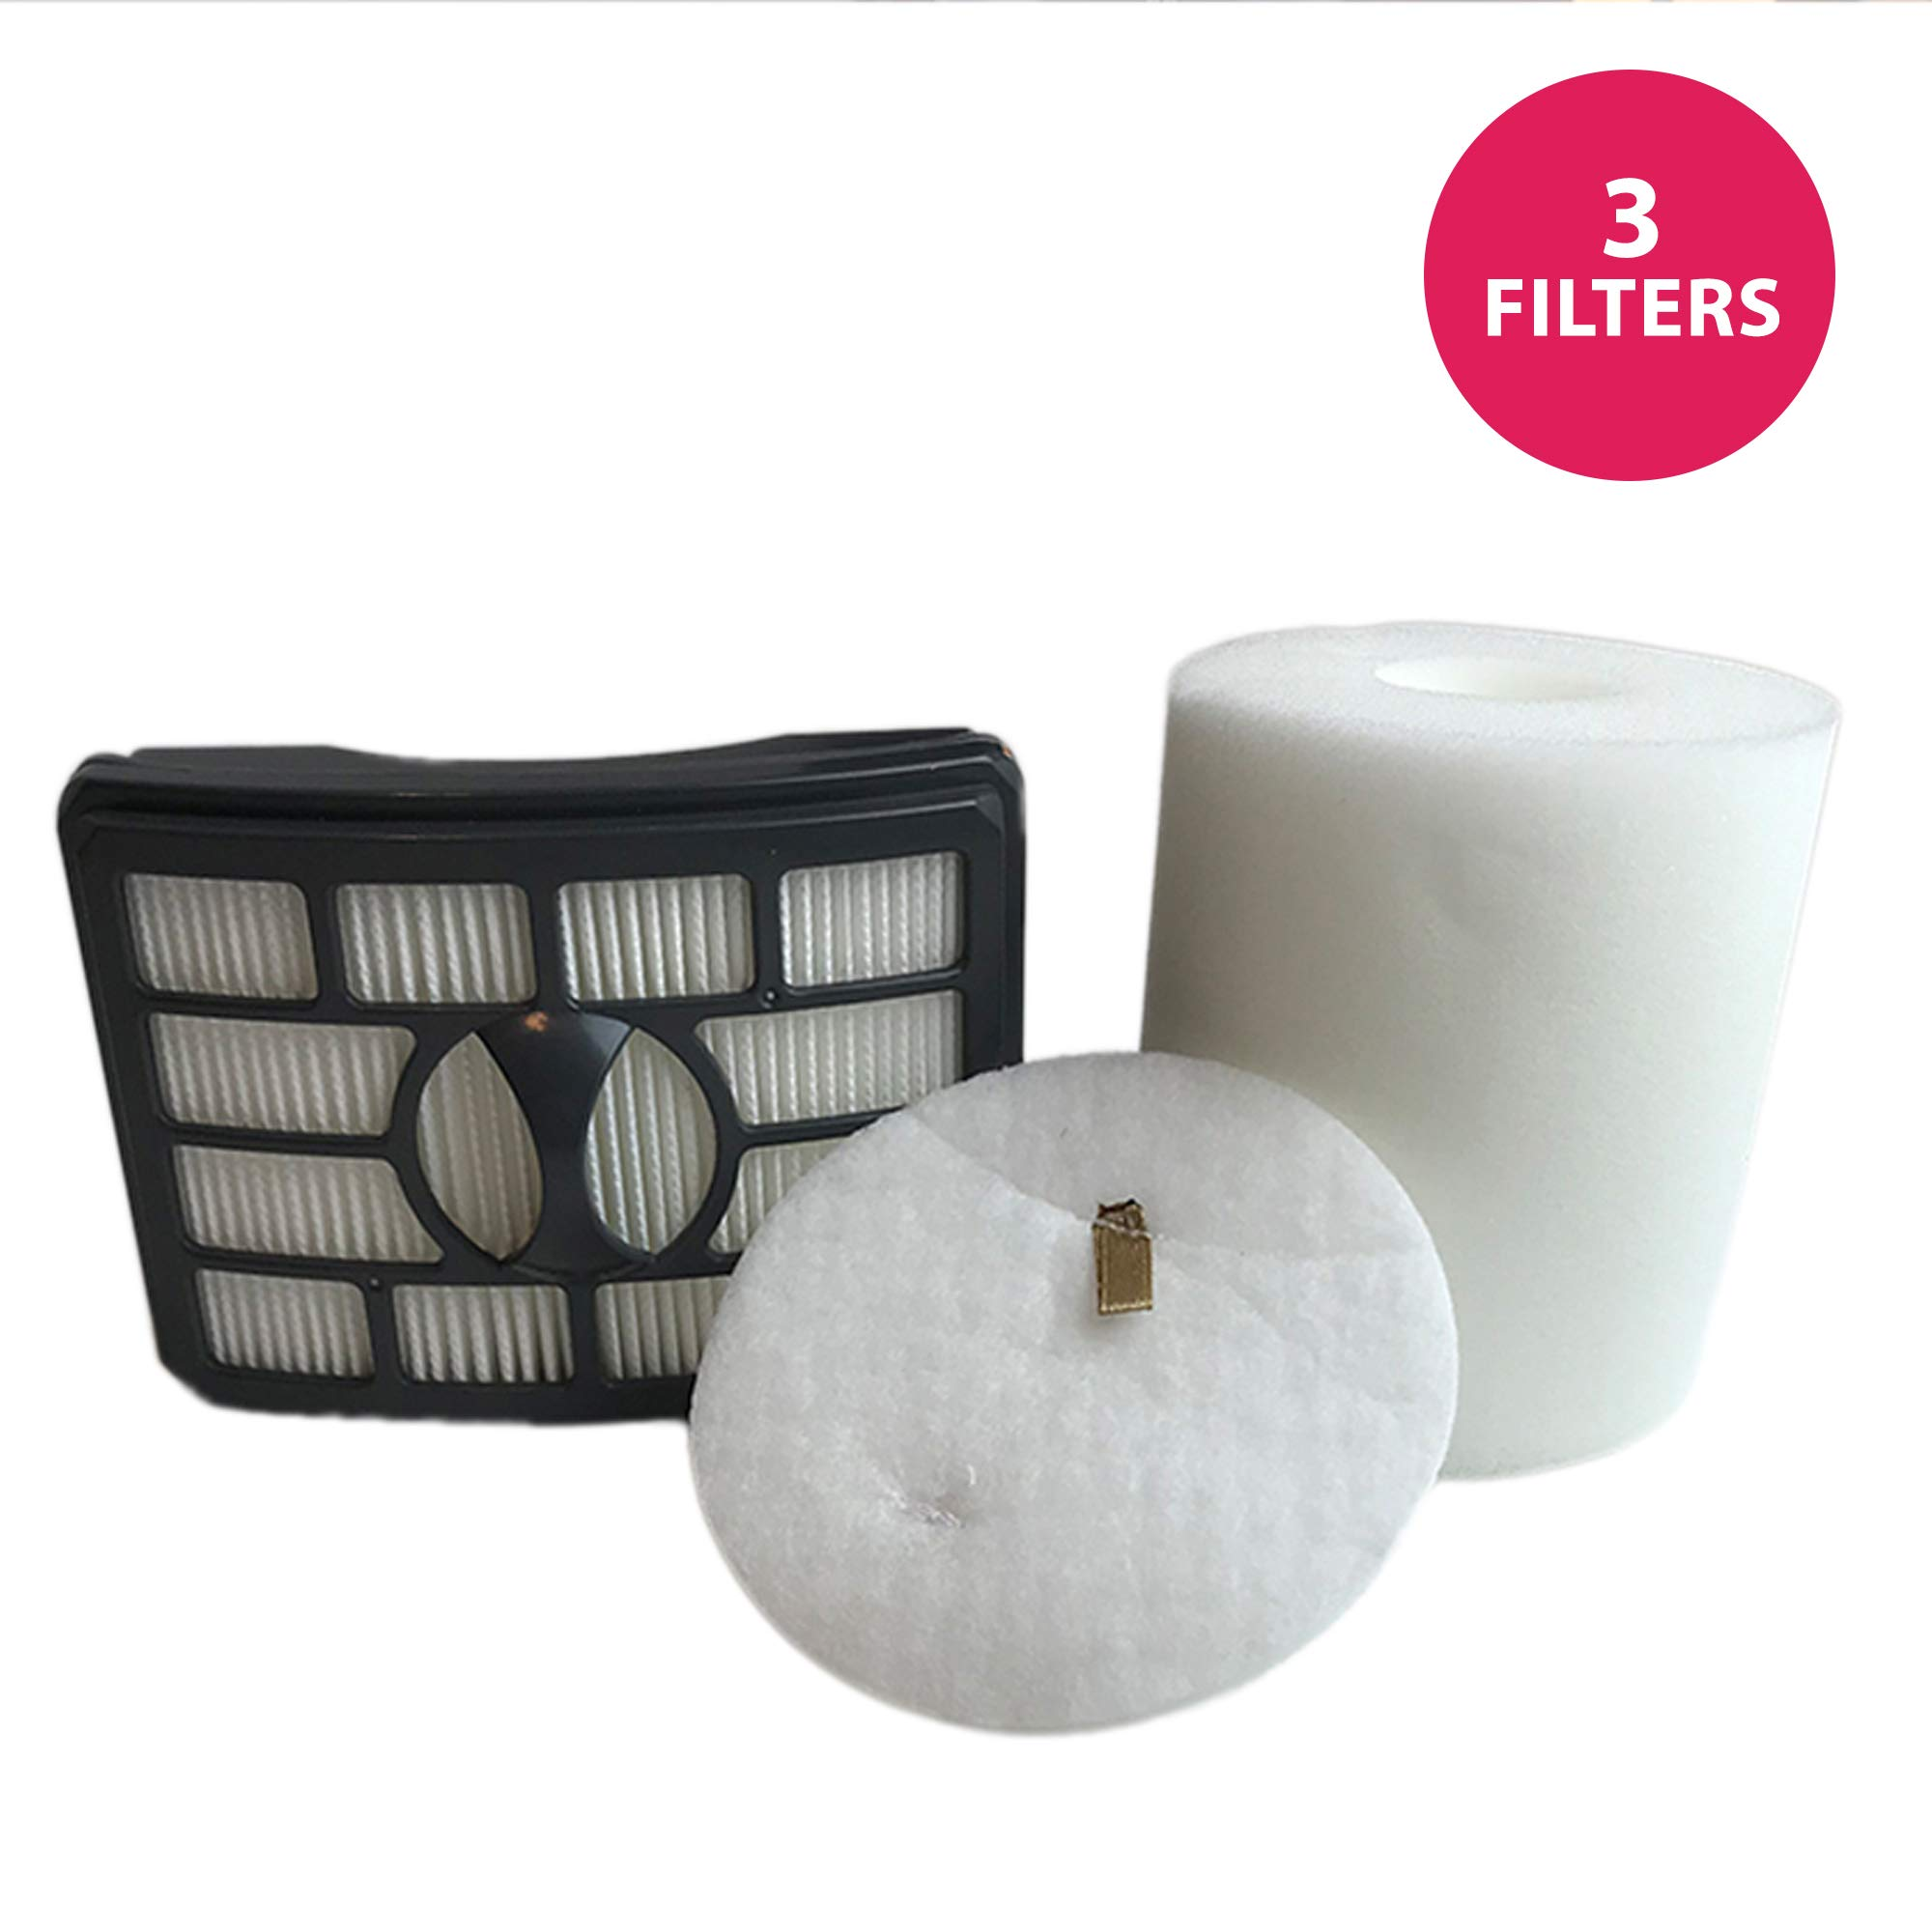 Think Crucial Replacement for Shark NV500 HEPA Style, Foam & Felt Filters Fit Rotator Pro NV500, Compatible with Part # XFF500 & XHF500 by Crucial Vacuum